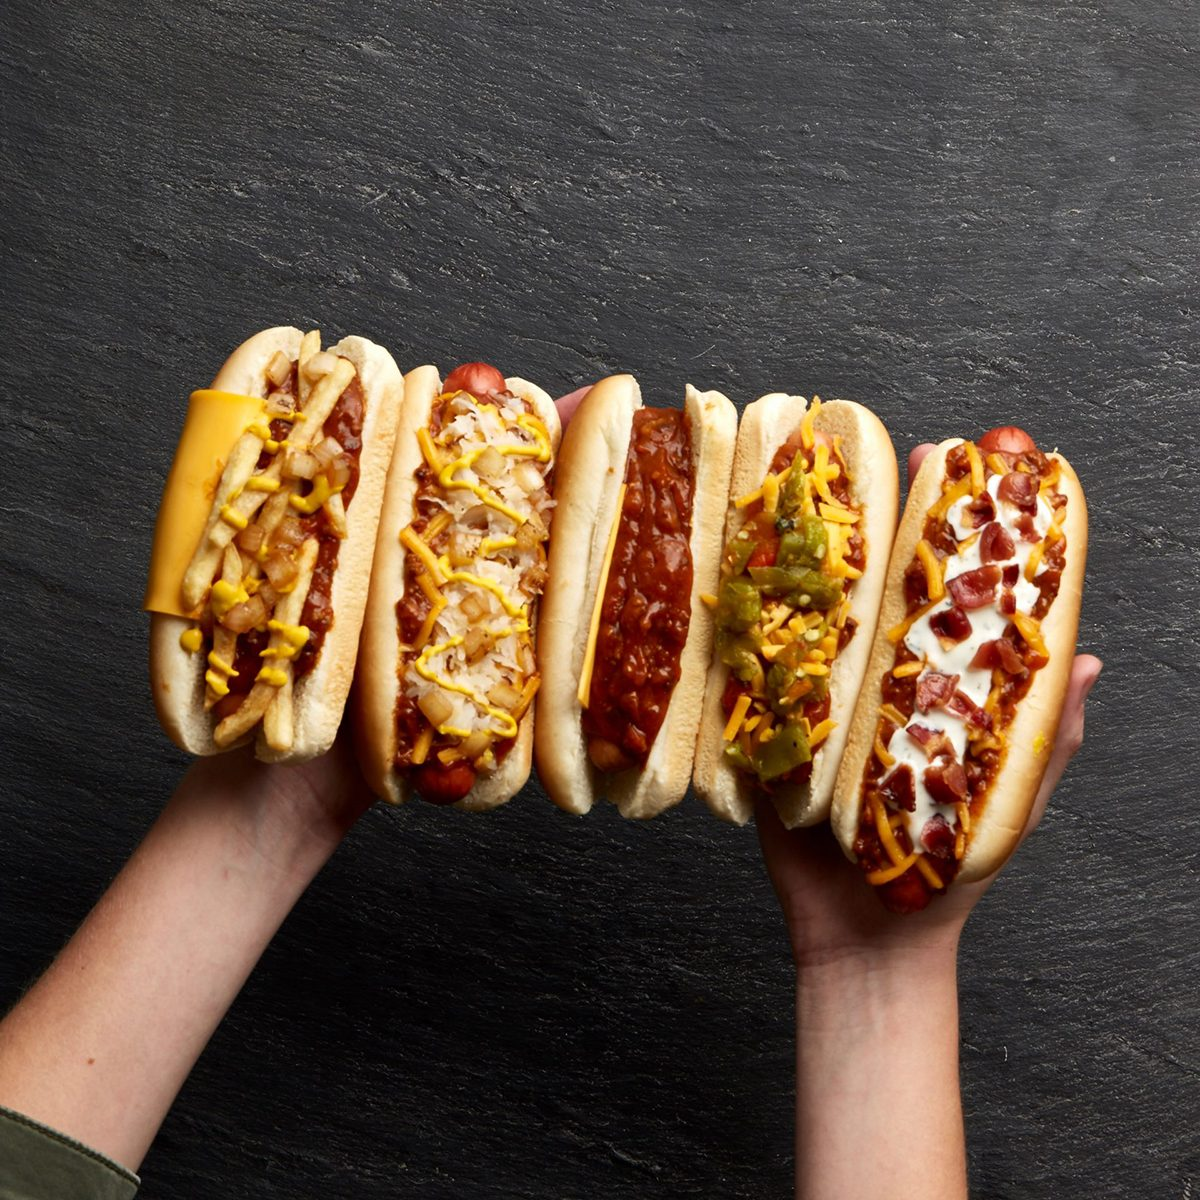 Two hands full of hotdogs